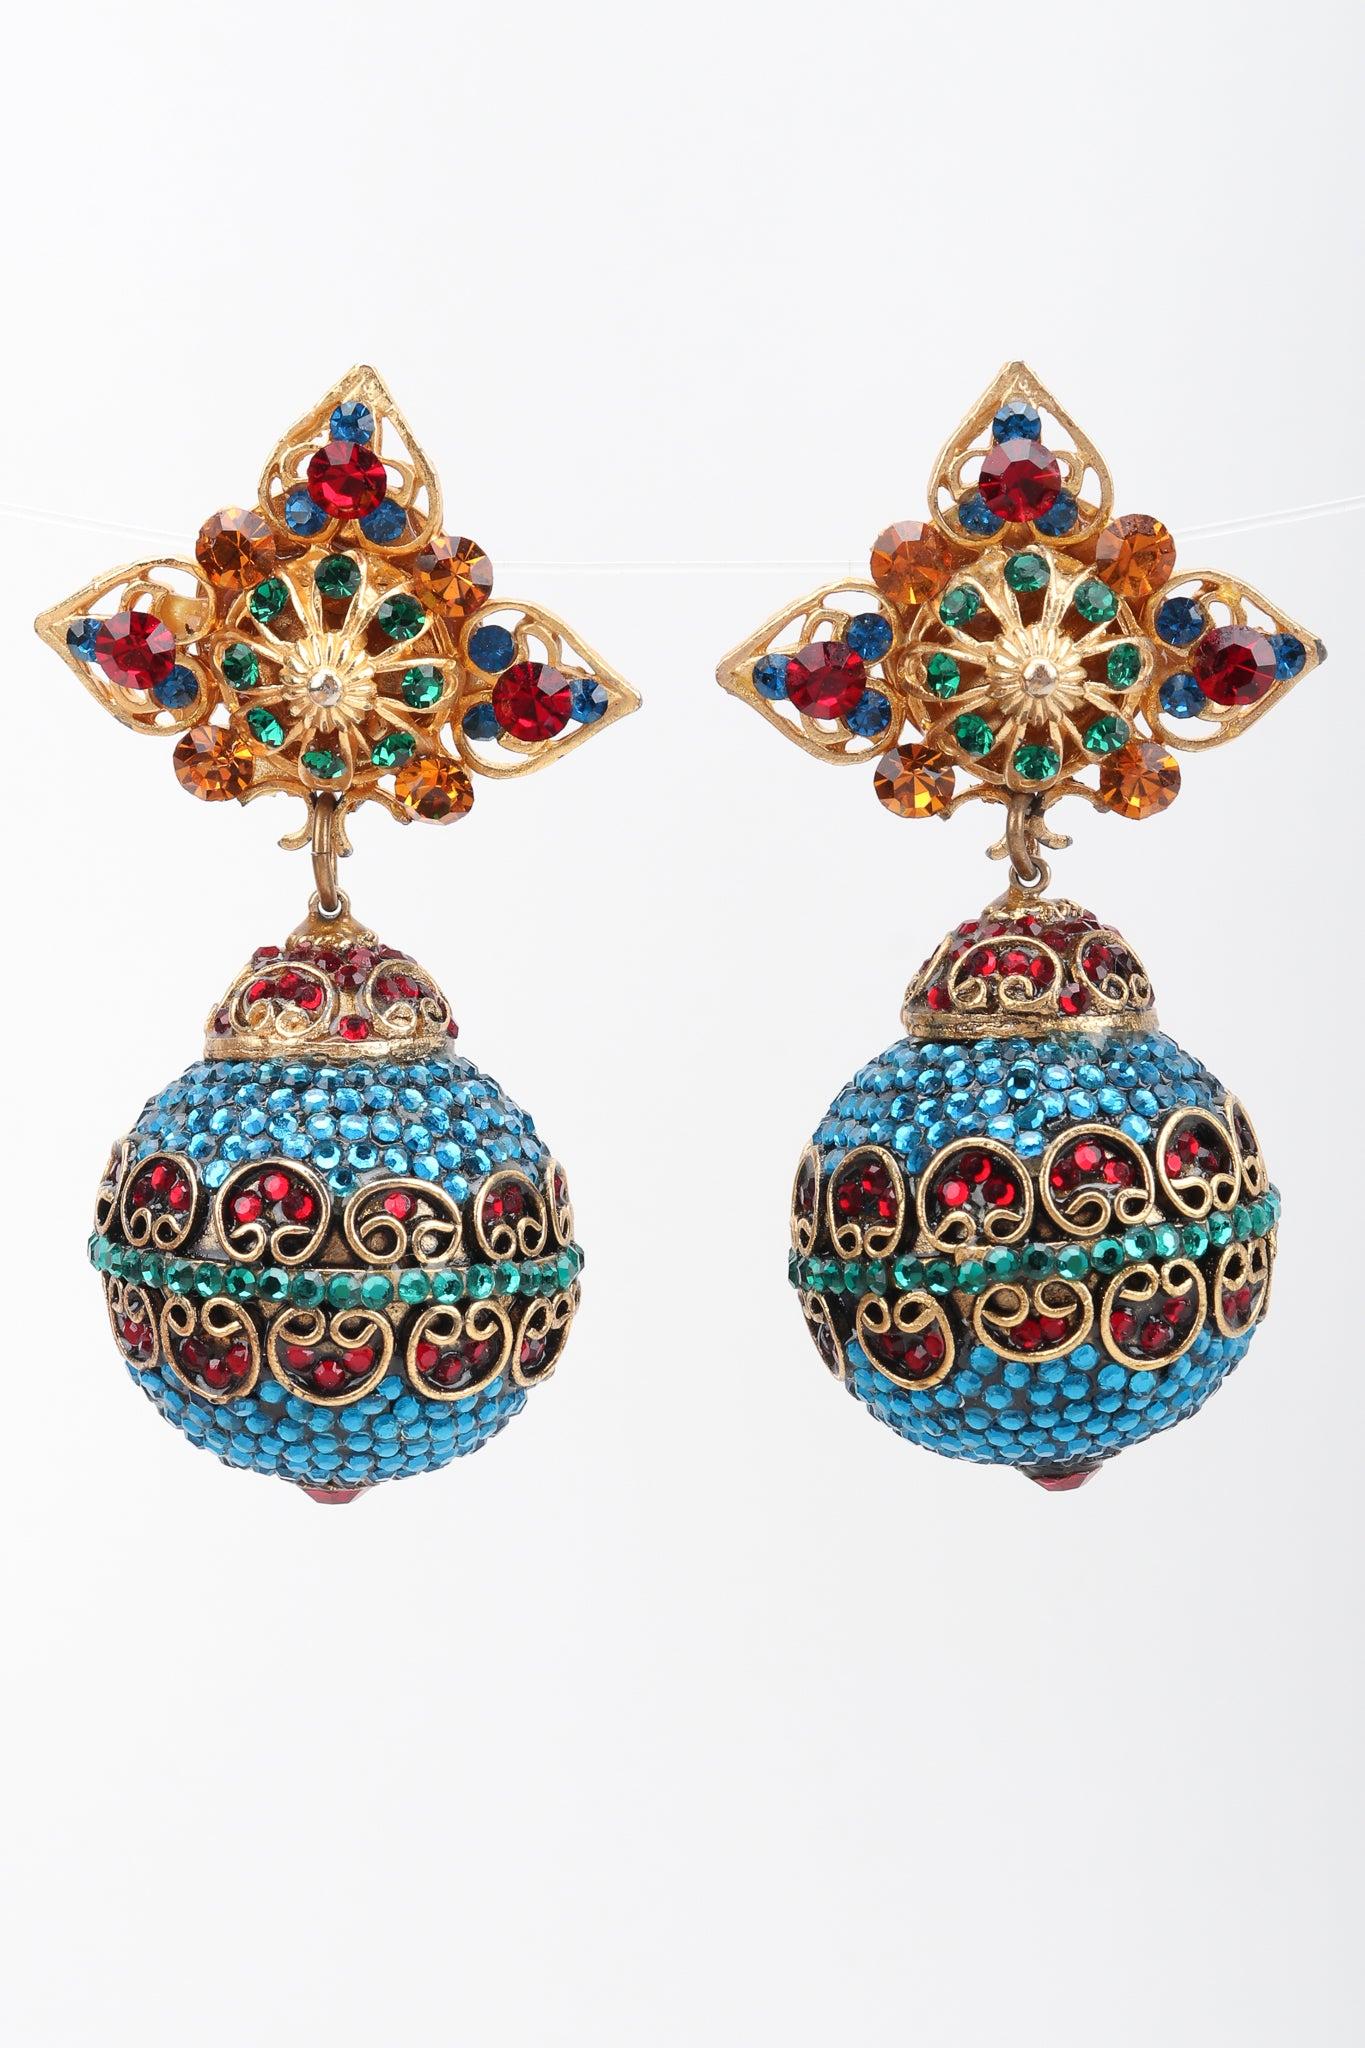 9a2925dae Recess Los Angeles Vintage Arabesque Swarovski Crystal Ball Drop Costume  Clip On Earrings